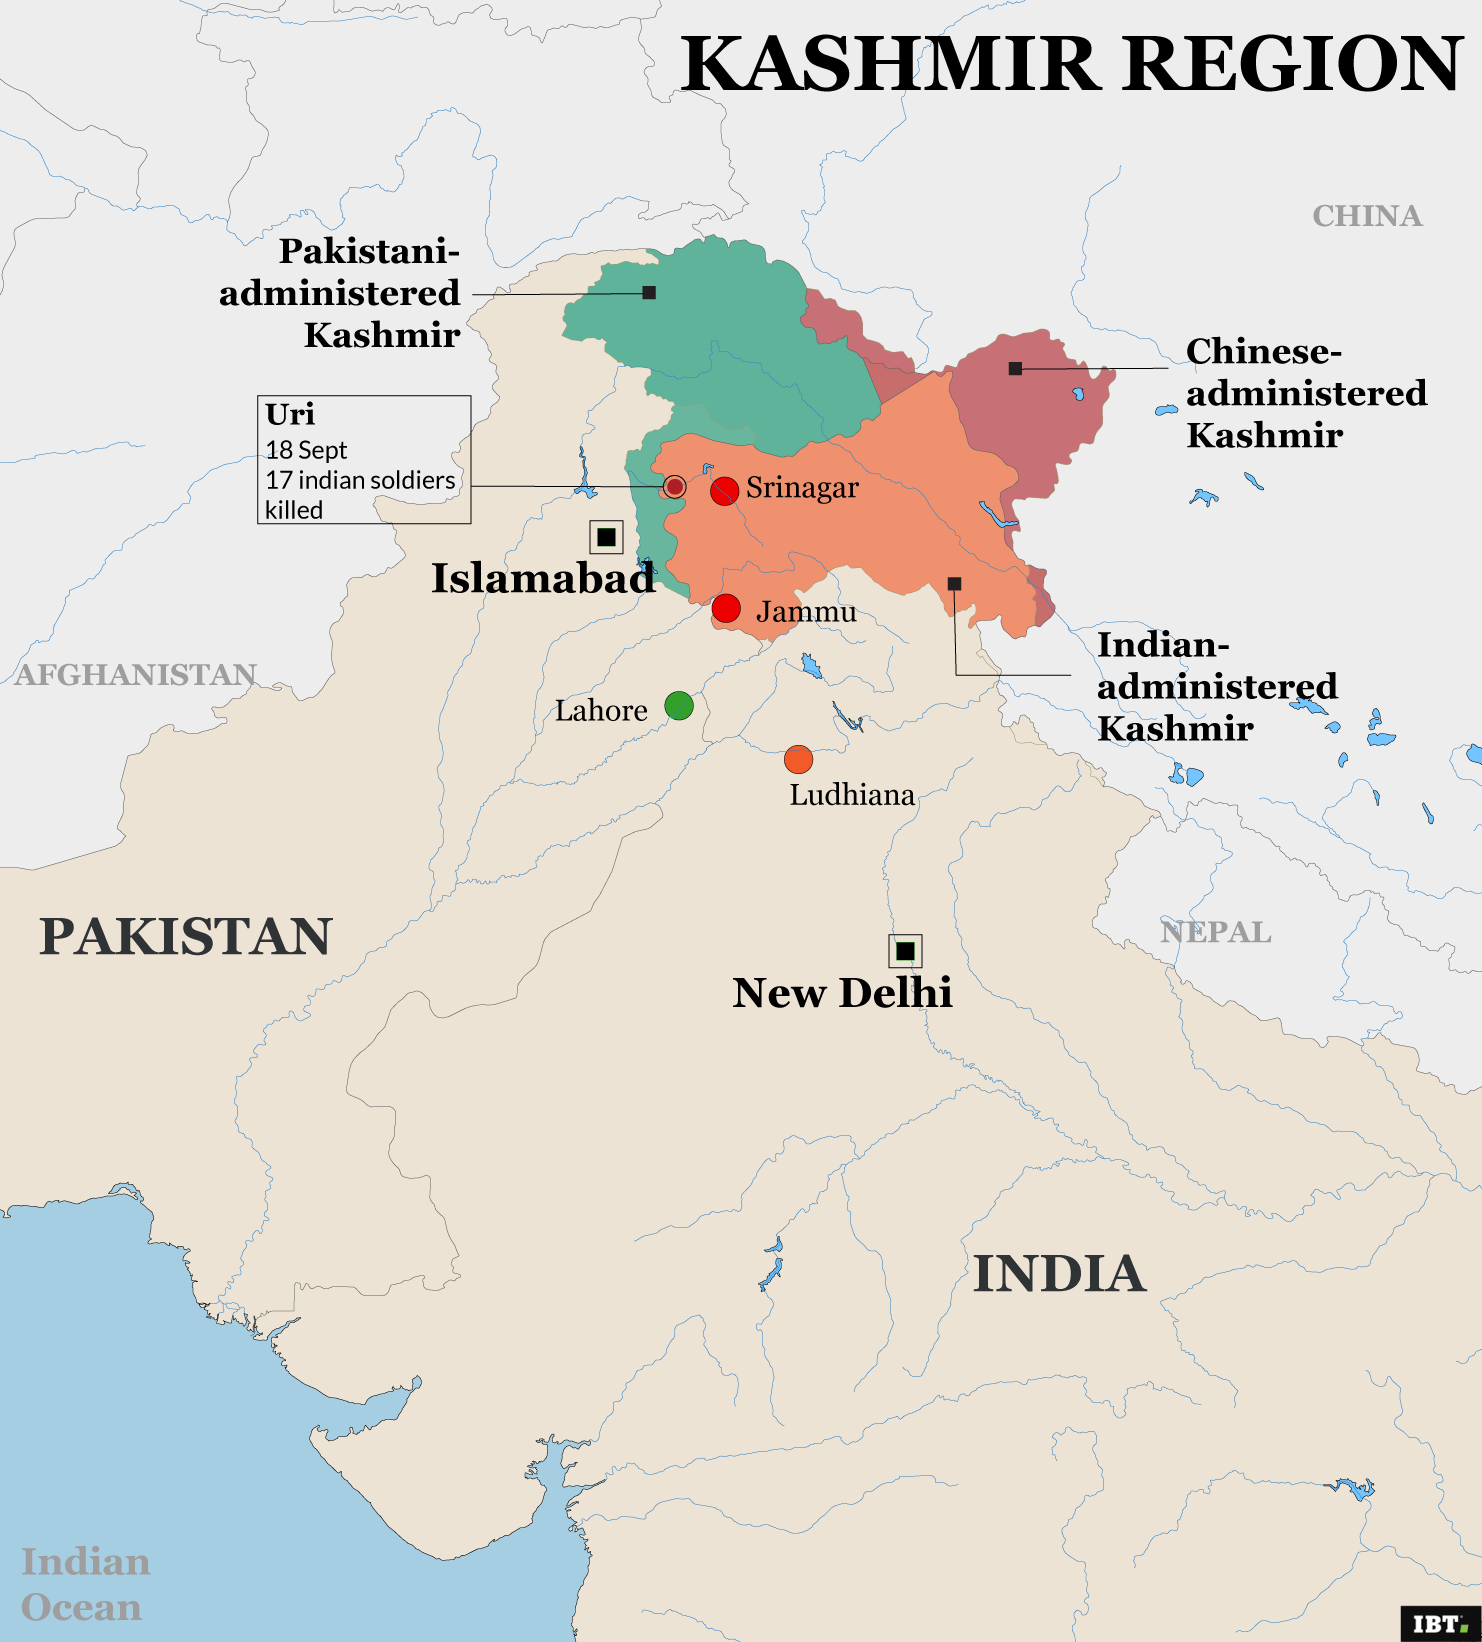 Kashmir region and disputed areas